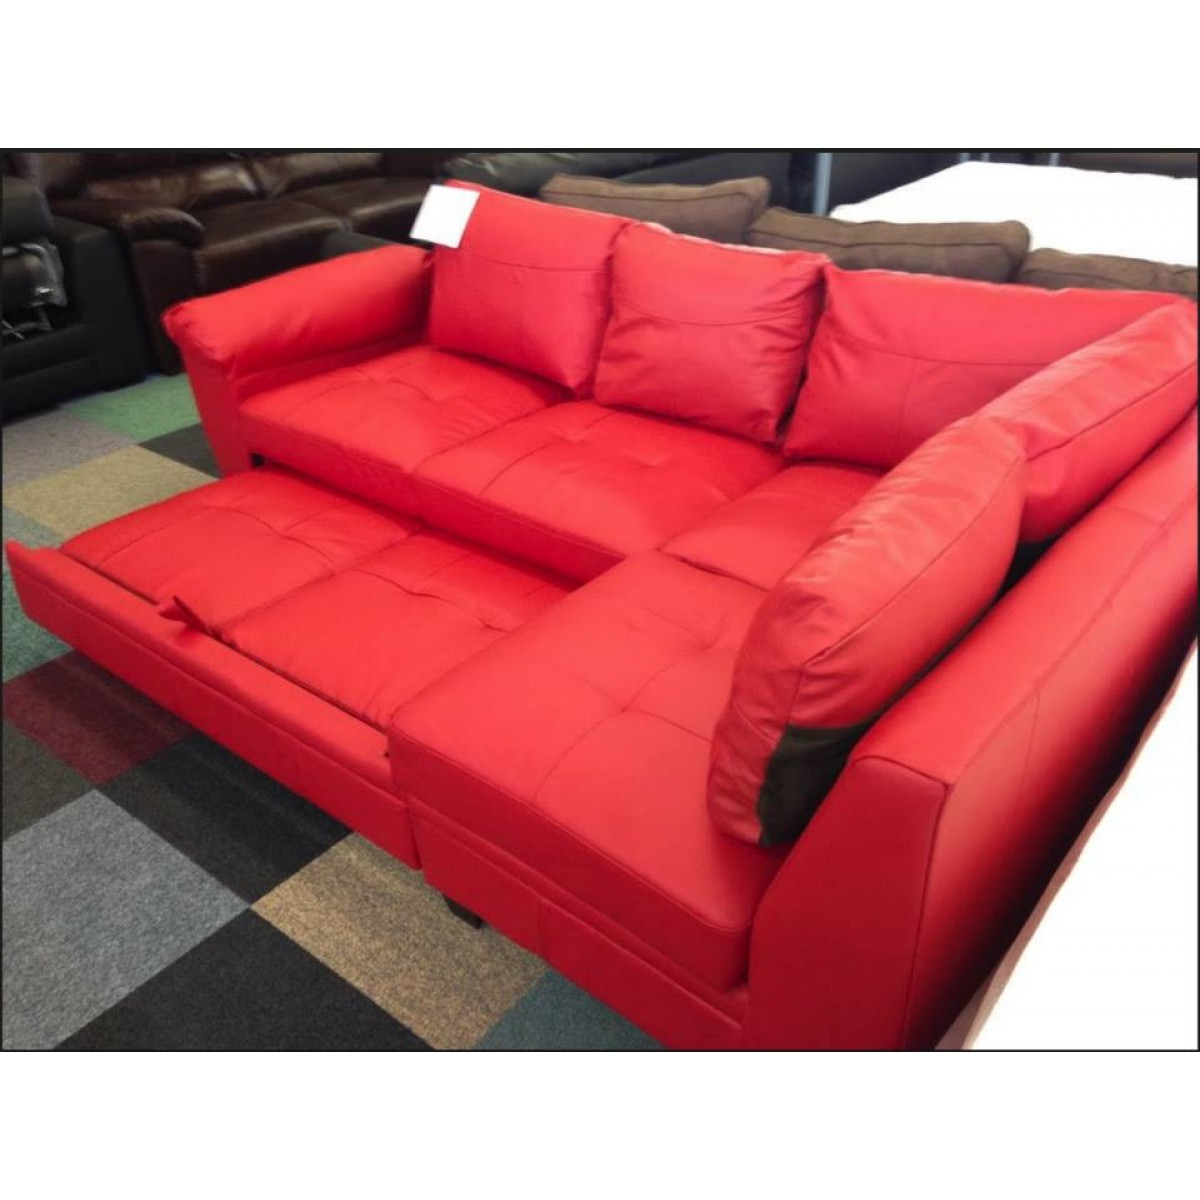 Best ideas about Red Sofa Beds . Save or Pin Red Leather Sofa Bed Uk Now.